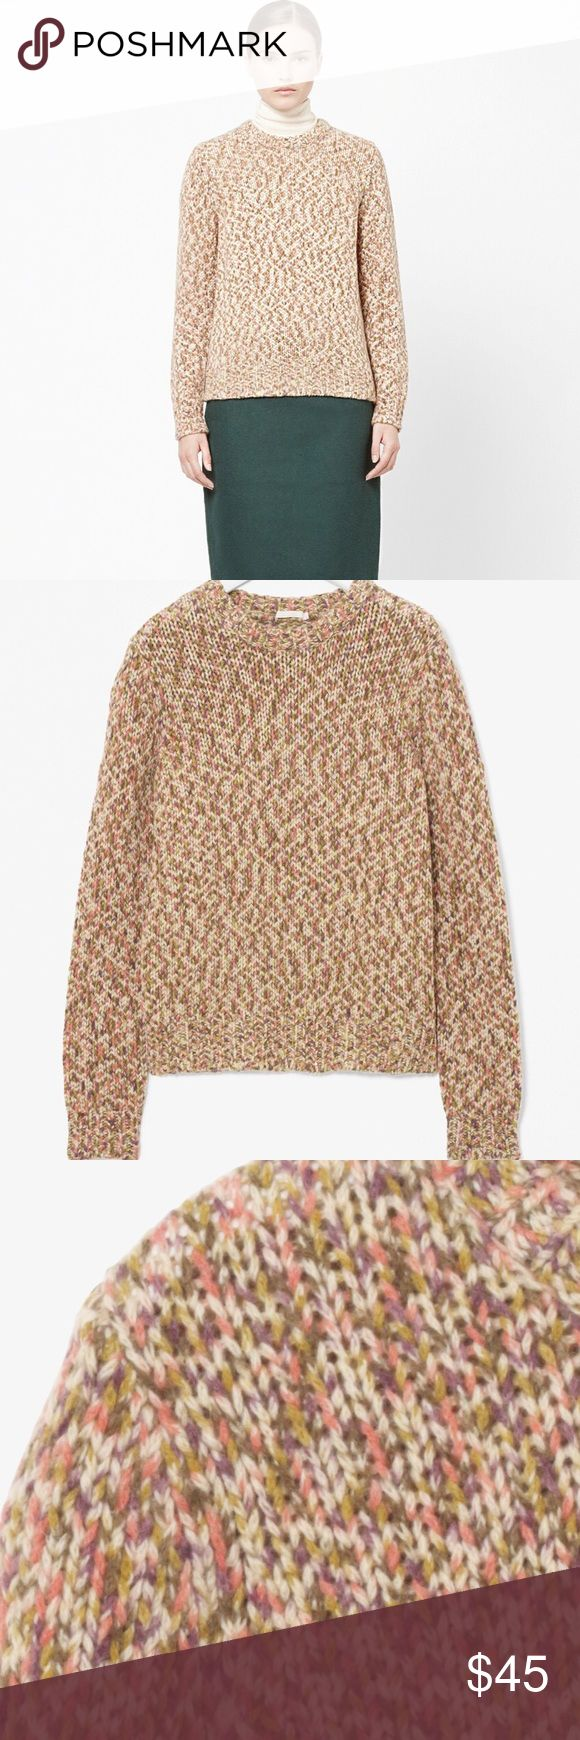 Cos MELANGE WOOL JUMPER MELANGE WOOL JUMPER Made from a melange wool mix , this multi-coloured jumper is a soft chunky knit. A regular fit, it has long sleeves and a round neckline. 55% Wool / 30% Polyamide / 15% Alpaca / Machine washable cos Sweaters